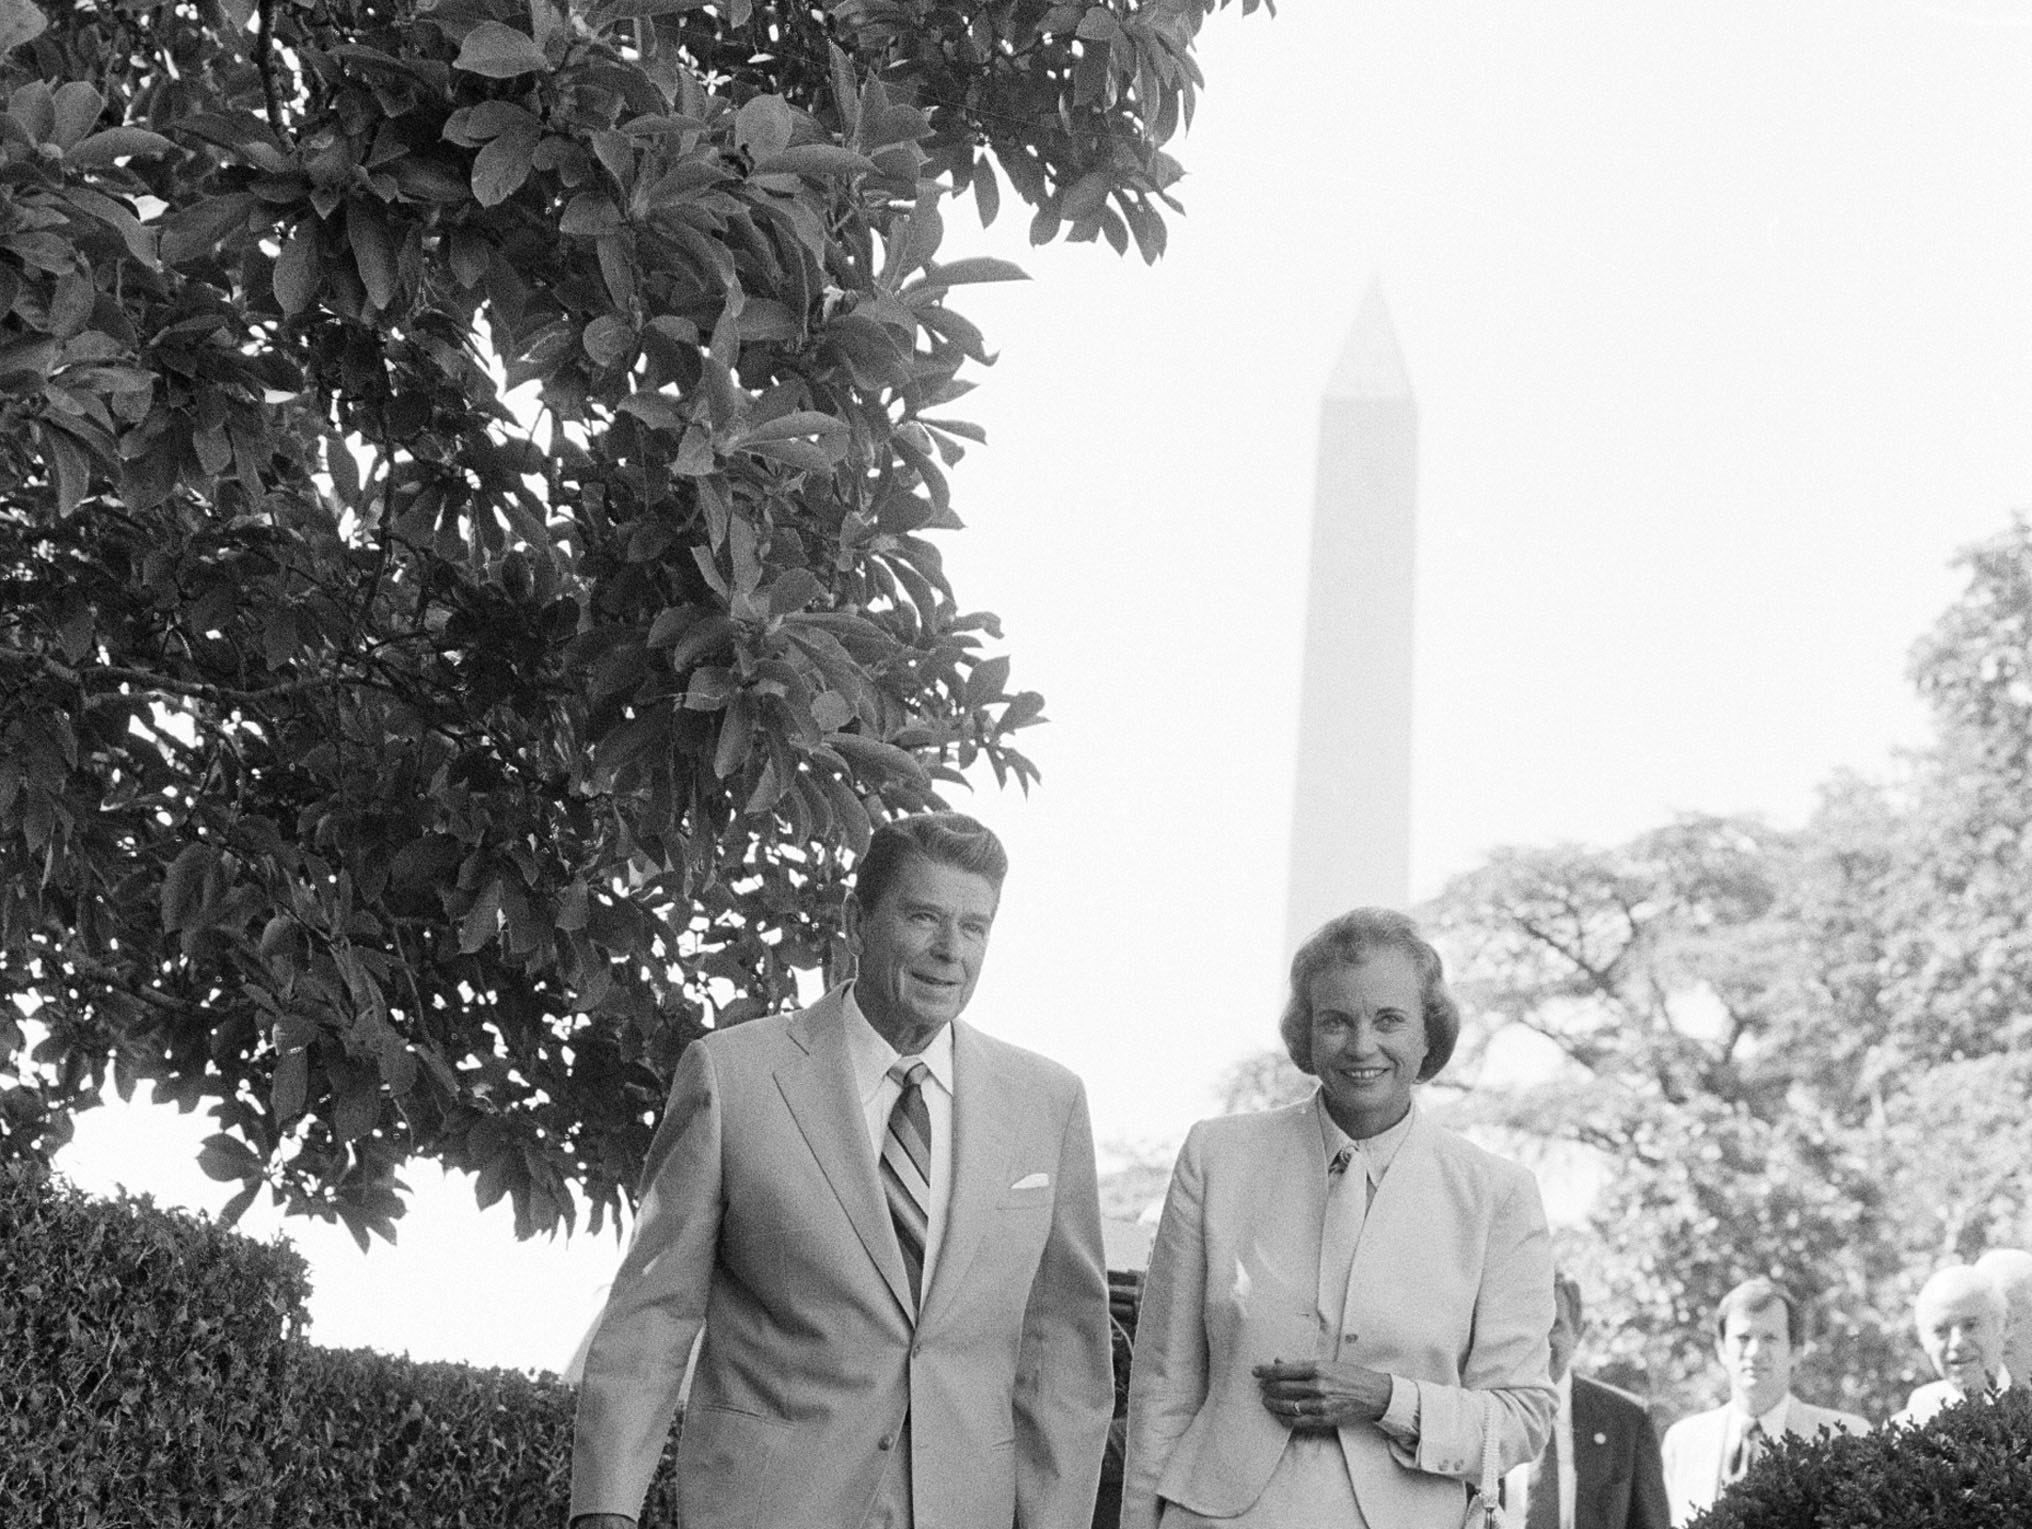 President Reagan and Supreme Court nominee Sandra Day O'Connor take the scenic route through the Rose Garden at the White House, July 15, 1981, as they prepare to pose for pictures prior to the start of their meeting at the Oval Office.